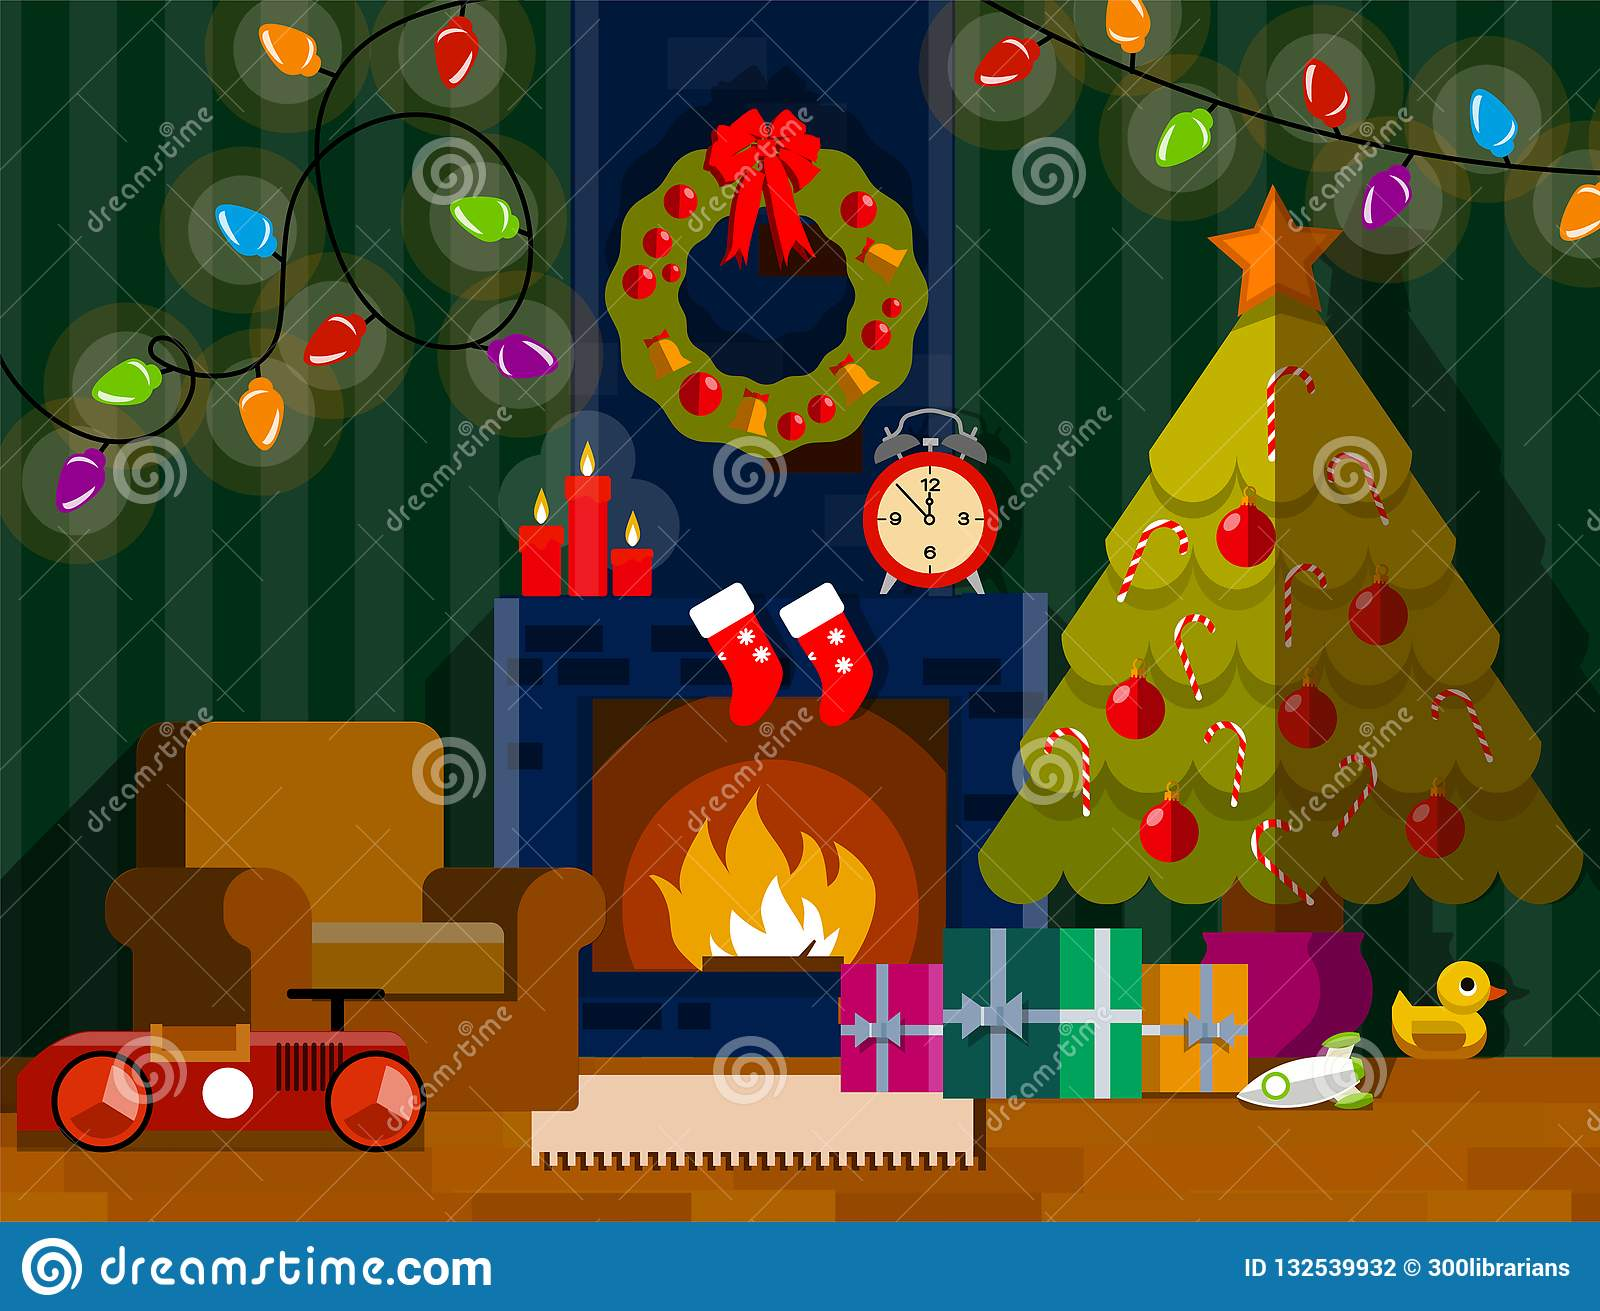 Christmas Living Room Interior With Fireplace Stock Vector